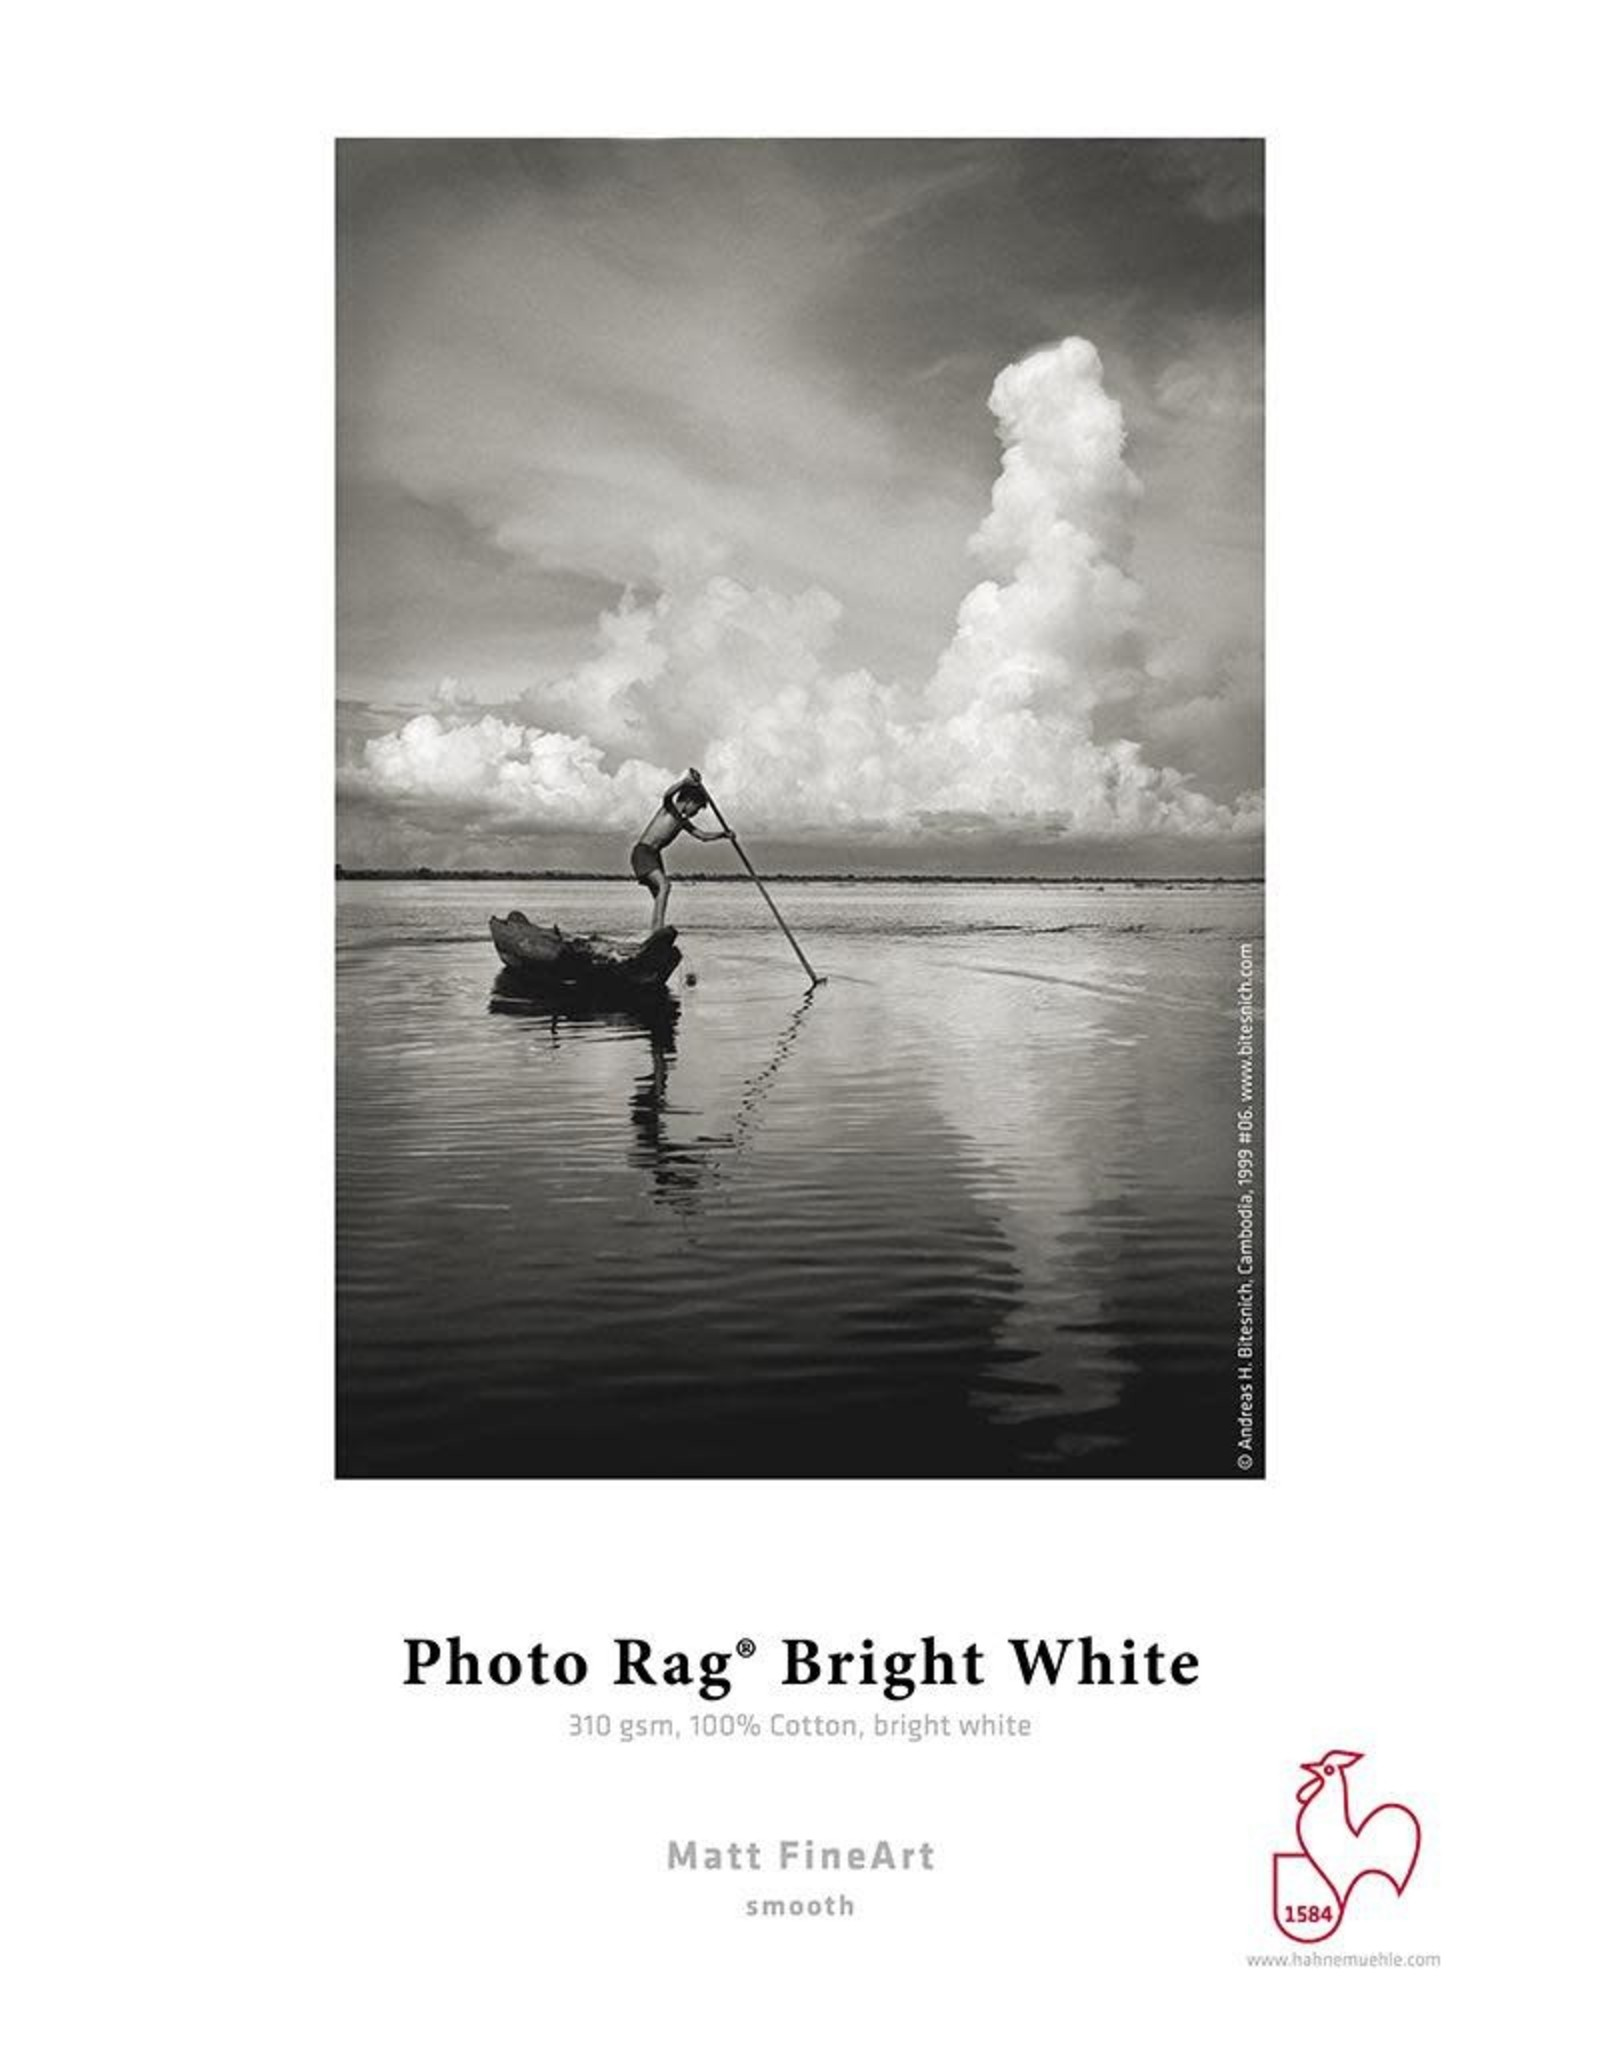 "Hahnemuhle Hahnemuhle Photo Rag® Bright White 310gsm 44"" x 39' Roll, 3"" core"